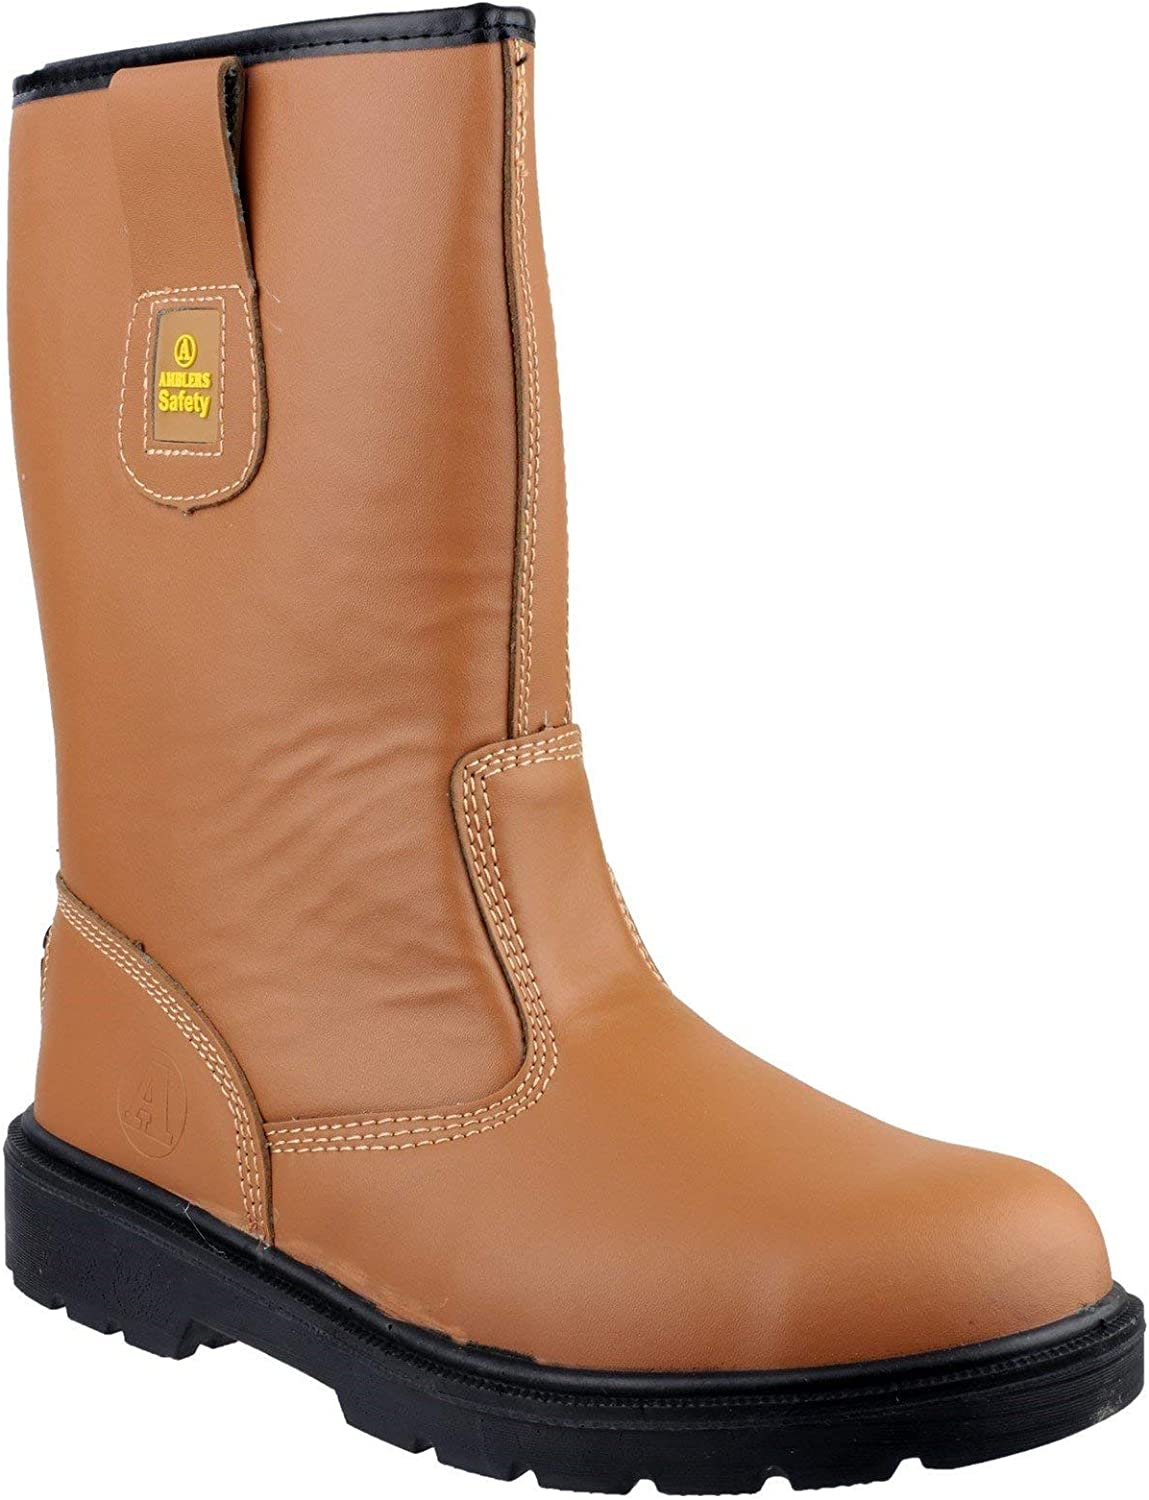 Amblers Safety FS124 Safety Rigger Boot Mens Boots